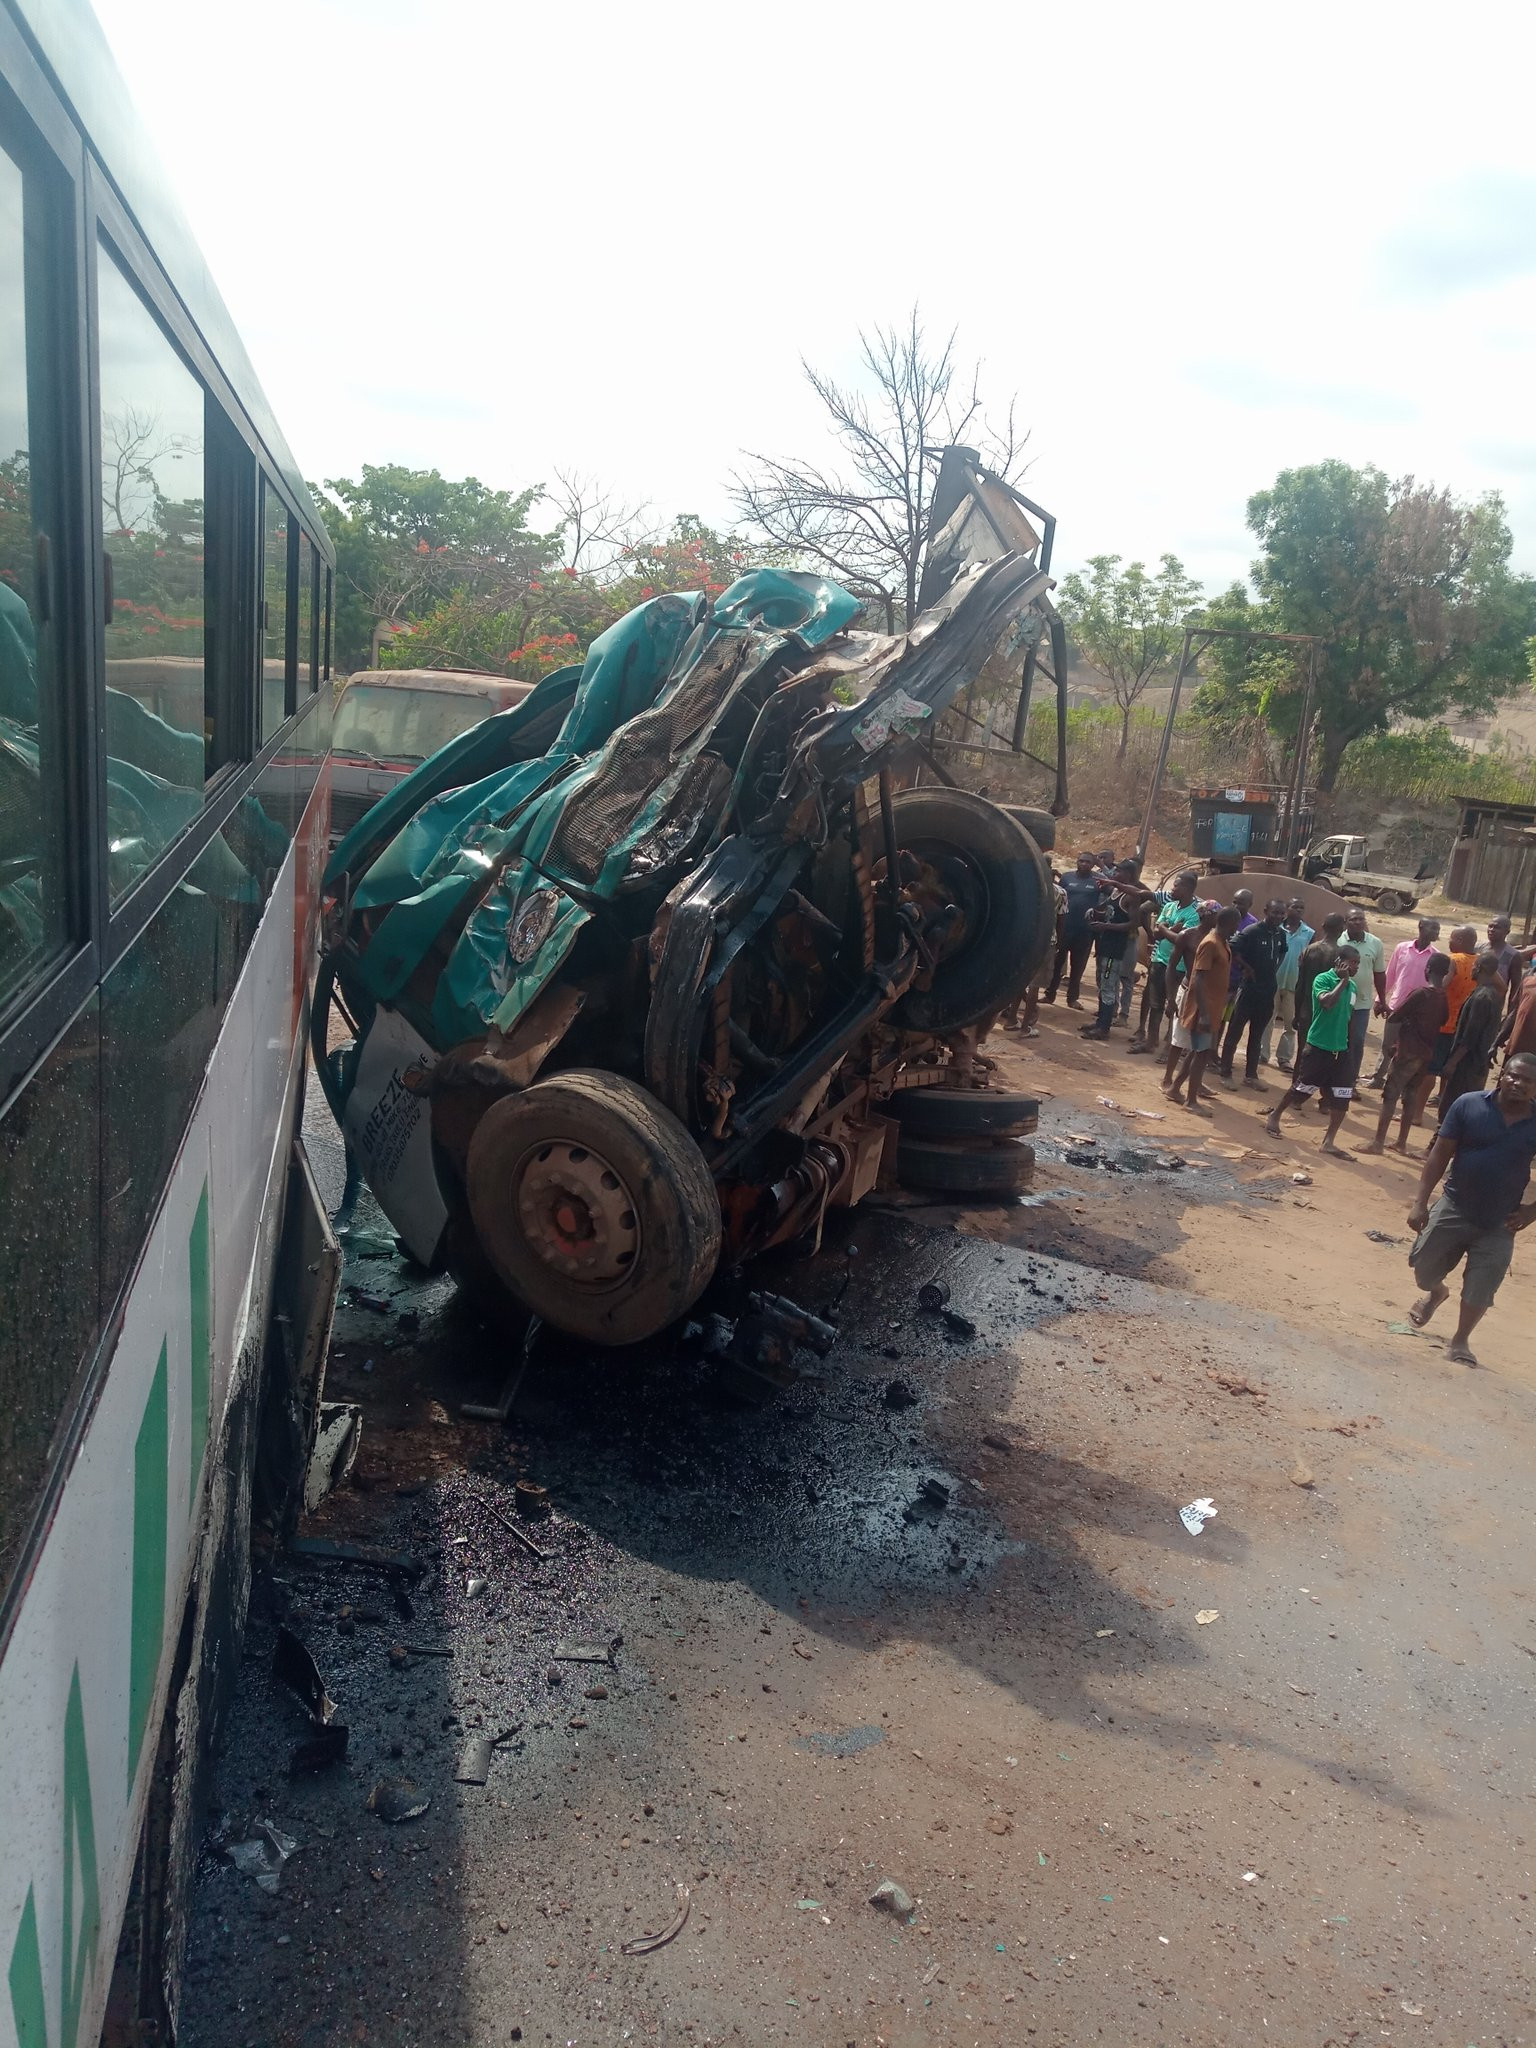 PHOTOS: Akwa United Football Team Involved In Accident In Enugu; Players, Officials Injured - Vantage News Nigeria